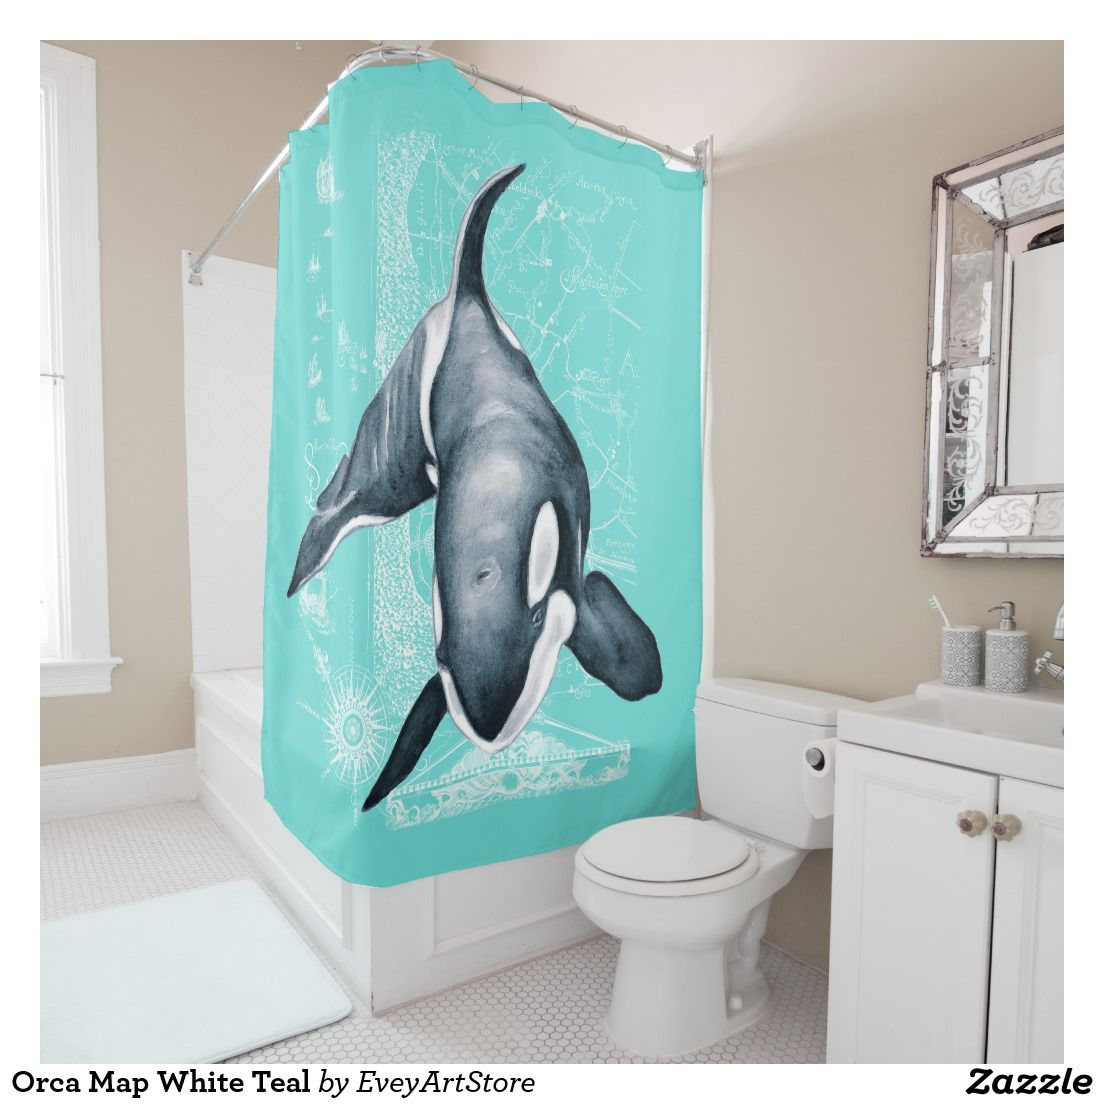 Treasure map shower curtain - Orca Map White Teal